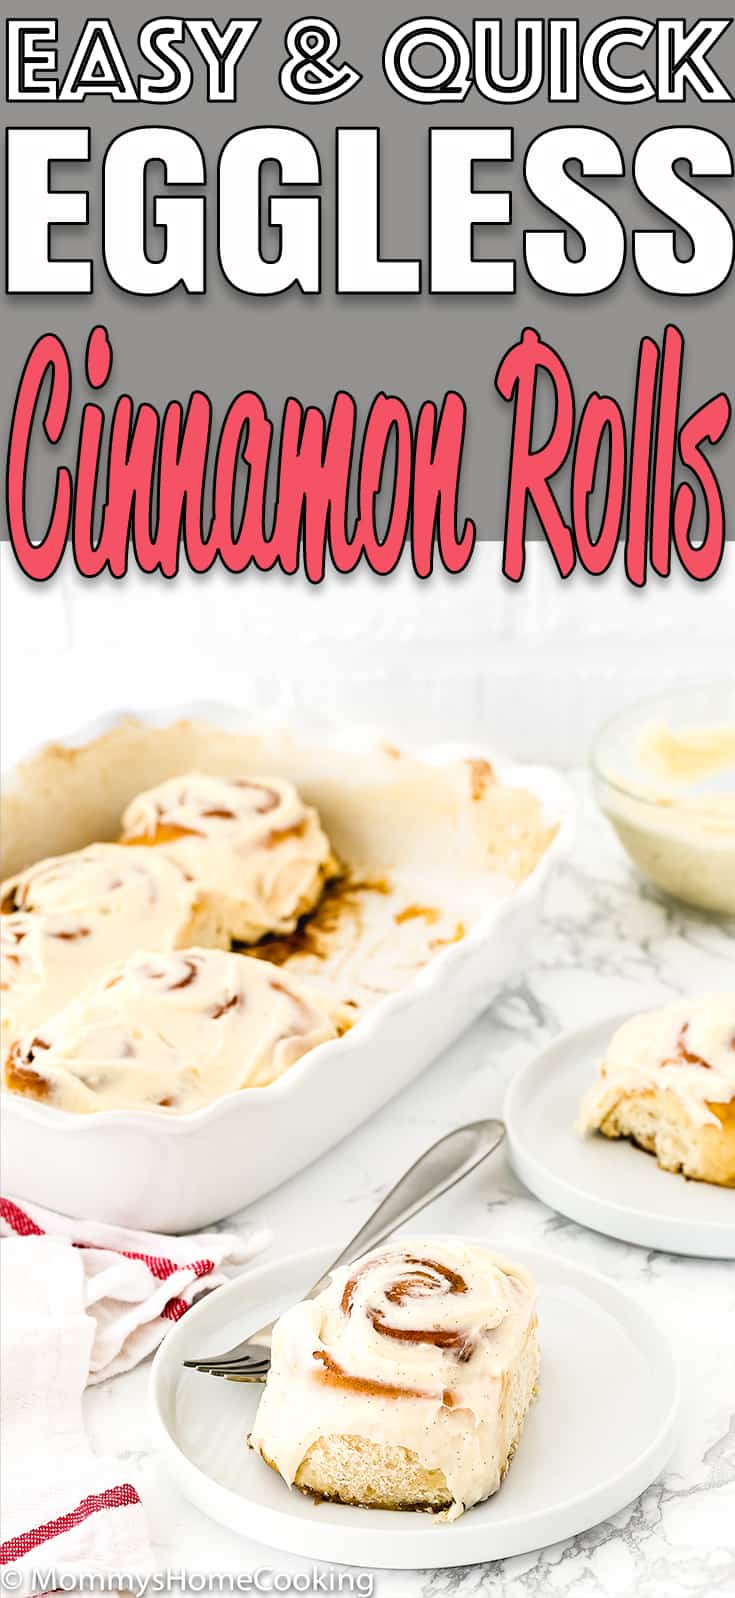 These Easy Eggless Cinnamon Rolls are fluffy, soft and are ready in about 1 hour! Made from scratch and totally delicious, this Eggless Cinnamon Rolls recipe is perfect for breakfast brunch or just dessert. Step-by-step photos and overnight instructions included. #recipe #easy #cinnamonrolls #eggless #eggfree #egglessbaking #breakfast #brunch